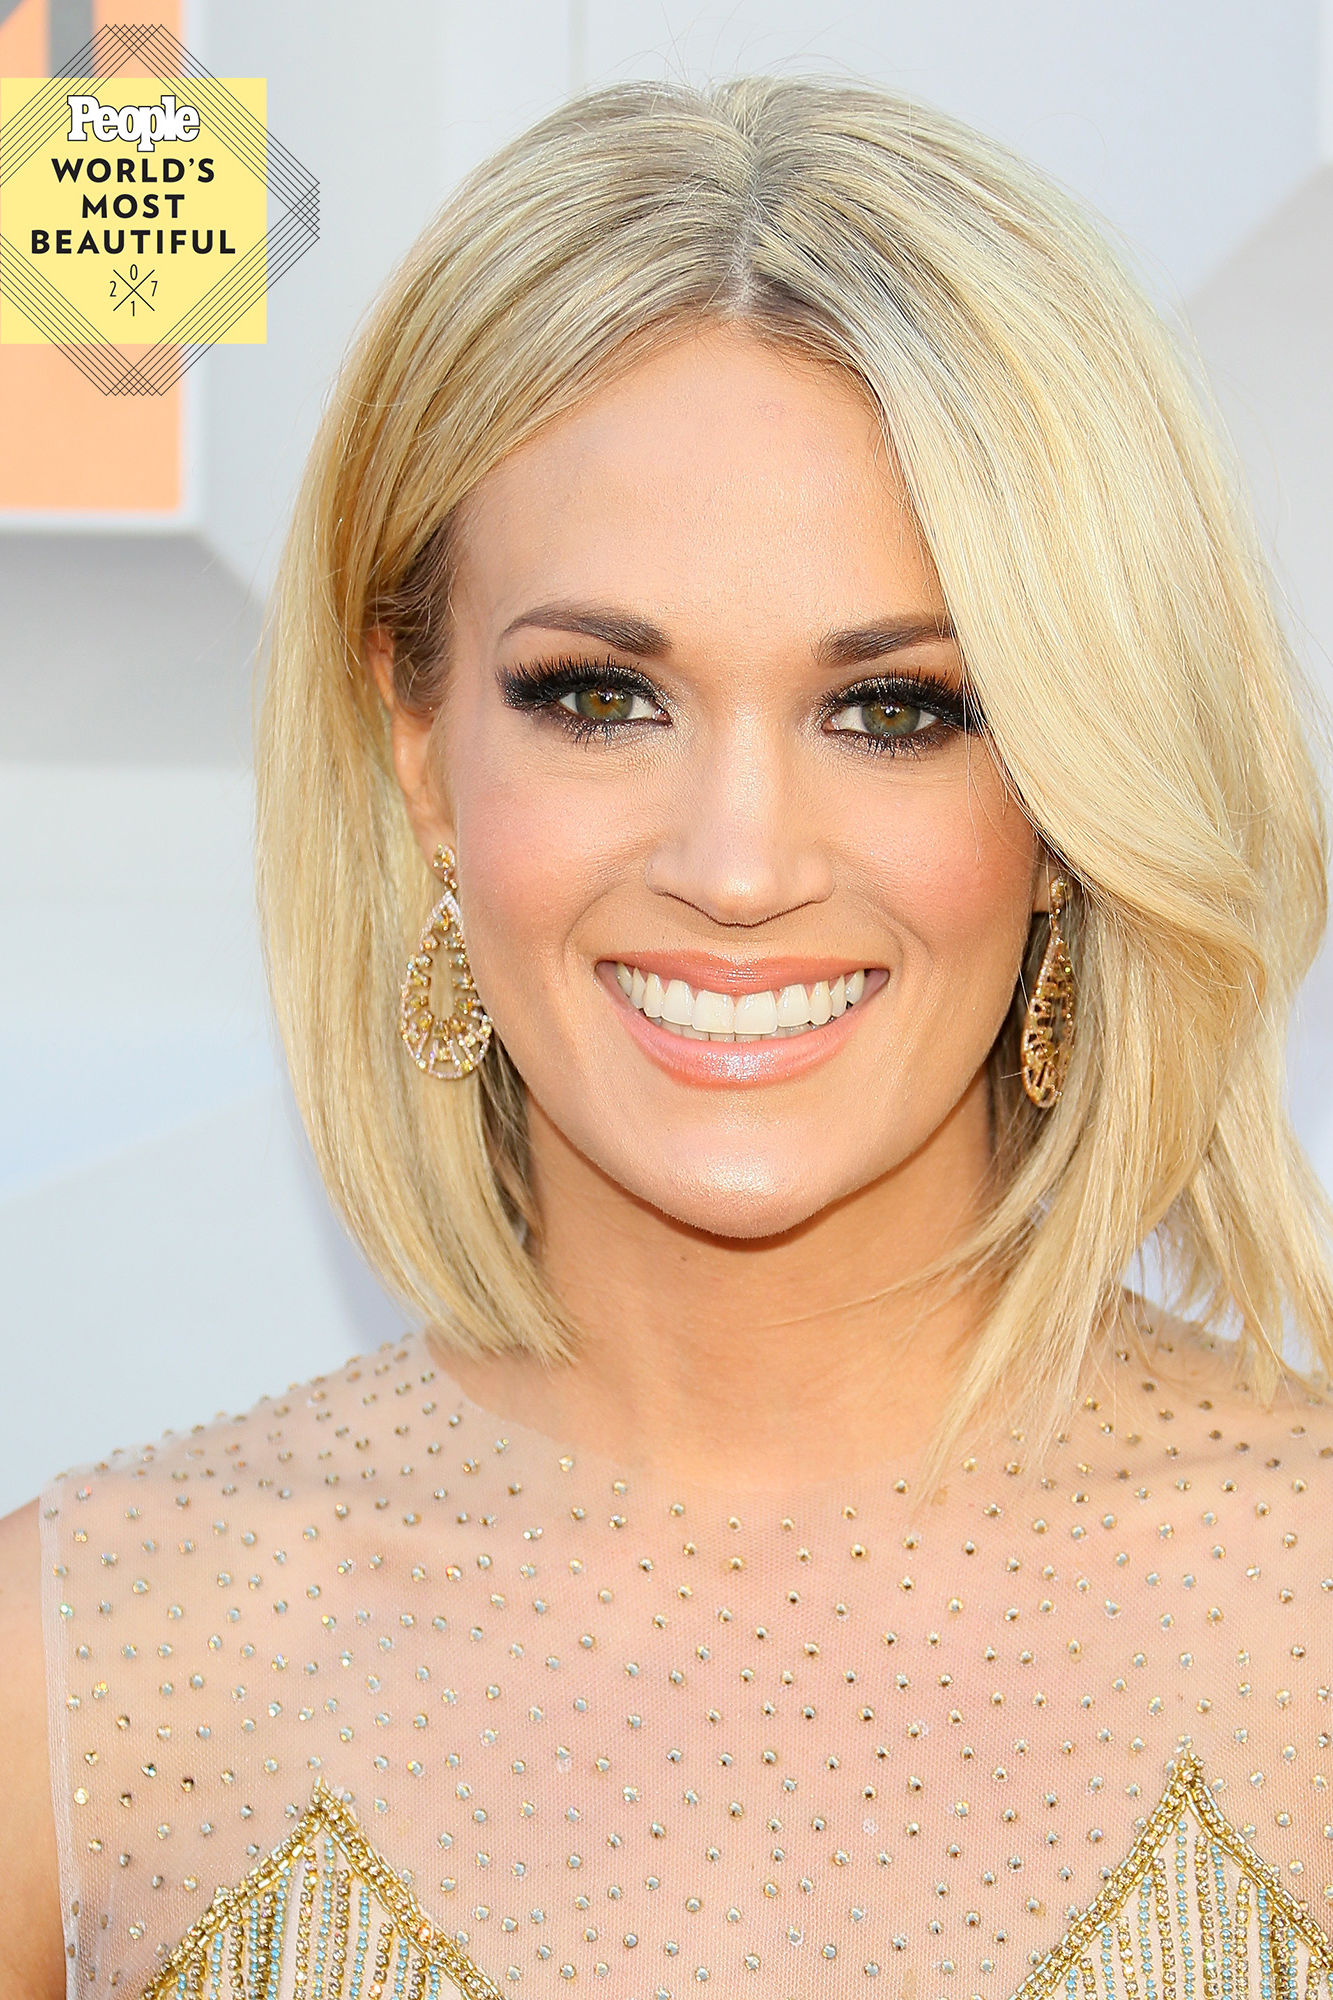 Carrie Underwood Reveals She Needed Over 40 Stitches in Her Face After November Fall